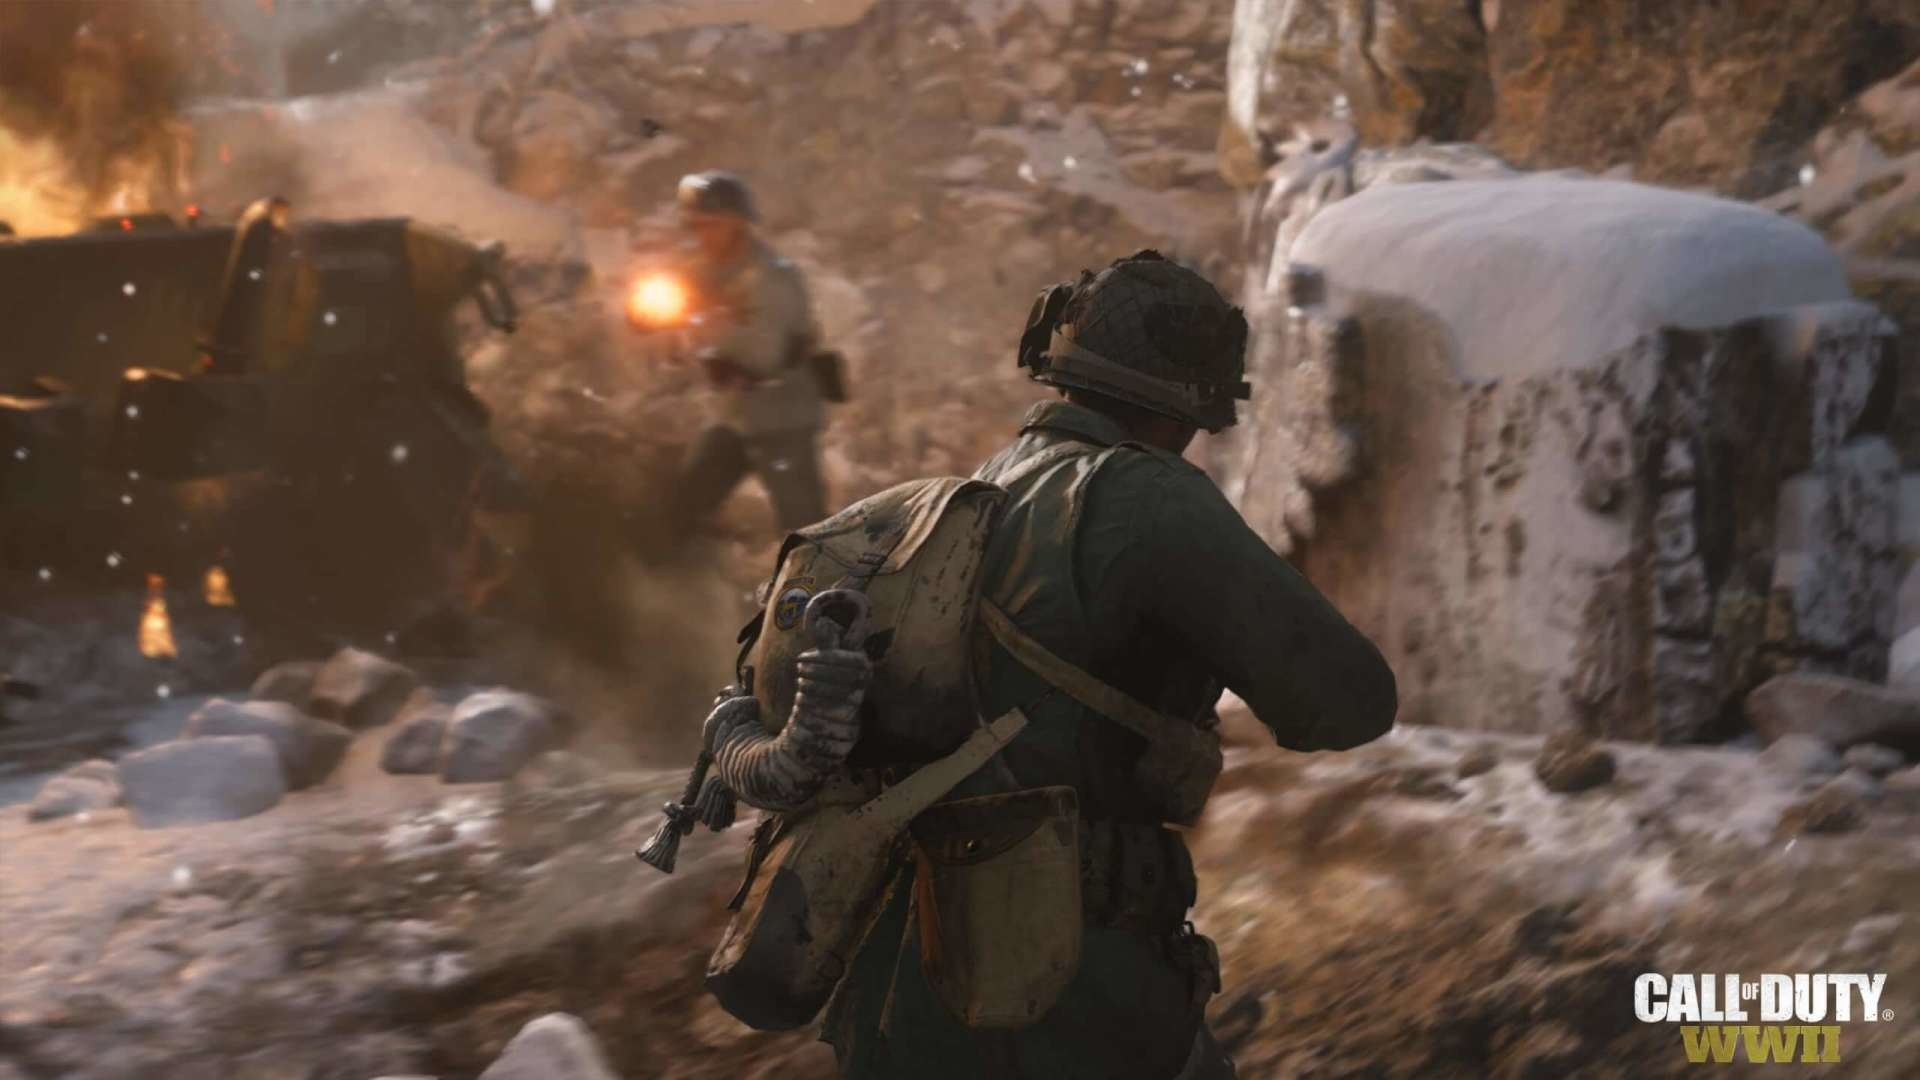 Call of Duty WW2 Vanguard rumored to be significantly